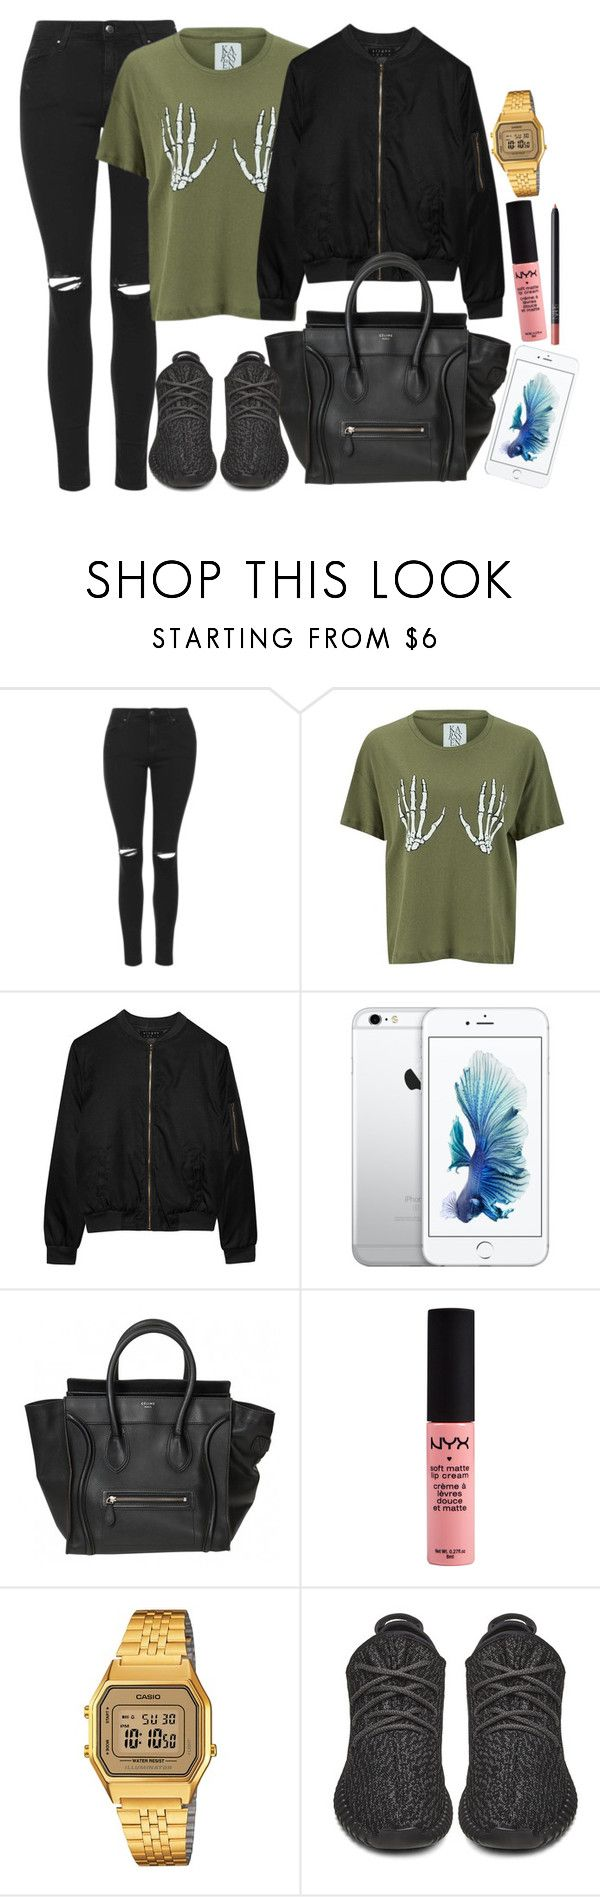 """Zoe Karssen , Alygne and Topshop"" by camrzkn ❤ liked on Polyvore featuring Topshop, Zoe Karssen, Alygne, Casio, adidas Originals and NARS Cosmetics"